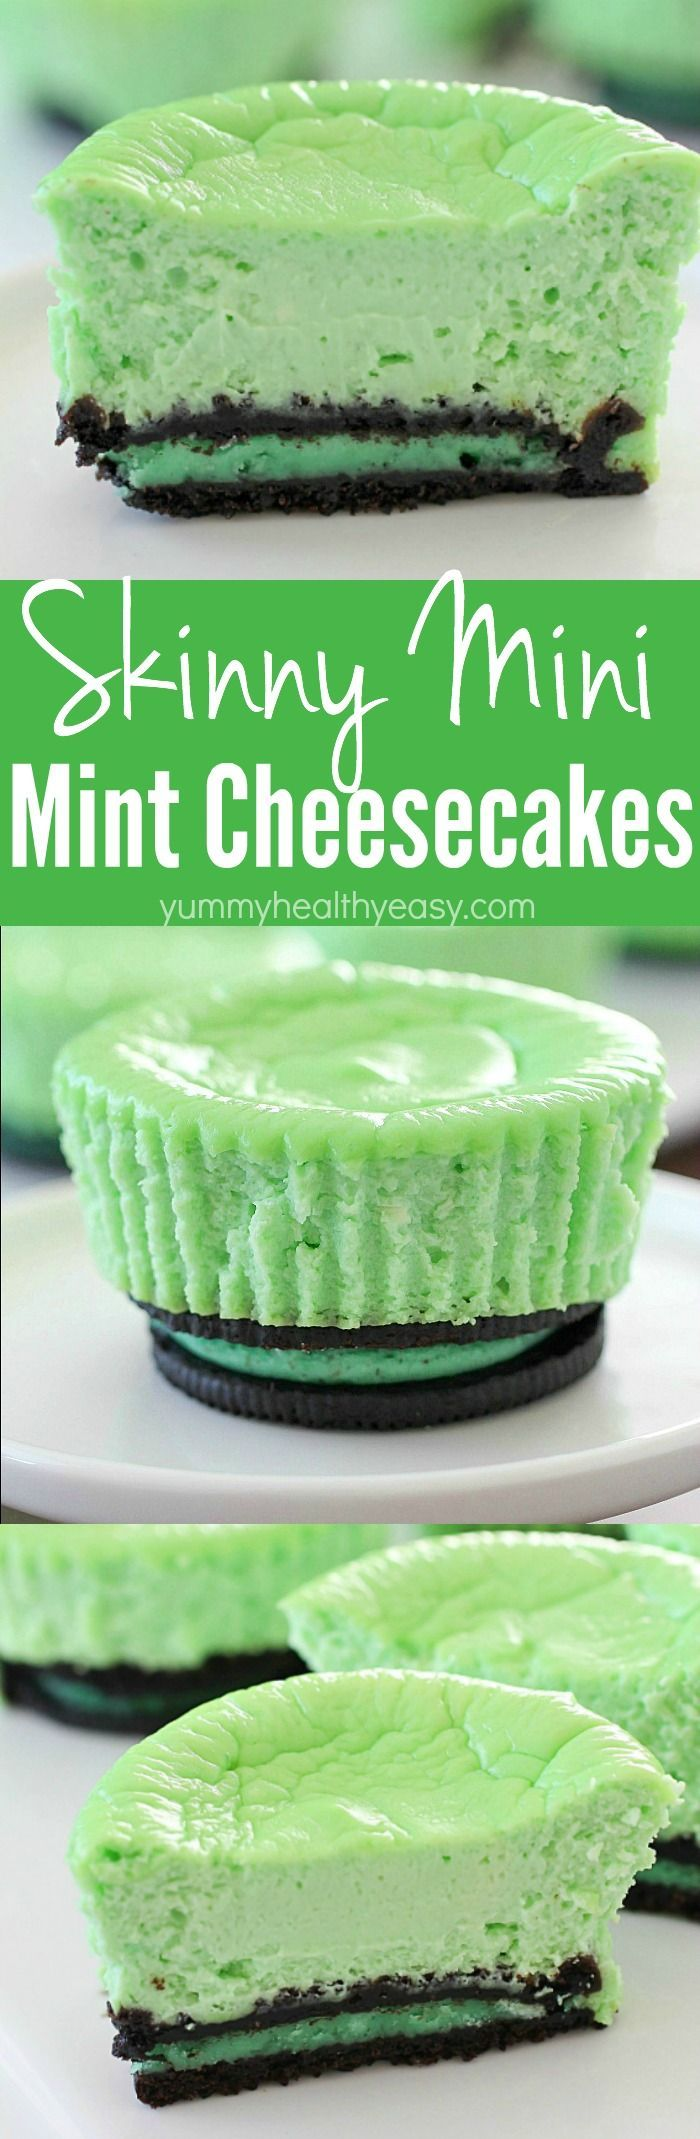 Skinny Mini Mint Cheesecakes with an Oreo crust! This lighter mint cheesecake recipe is super easy to make and you only need a few ingredients to whip up a batch. These cute cheesecakes have less calories than a regular cheesecake plus built-in portion co